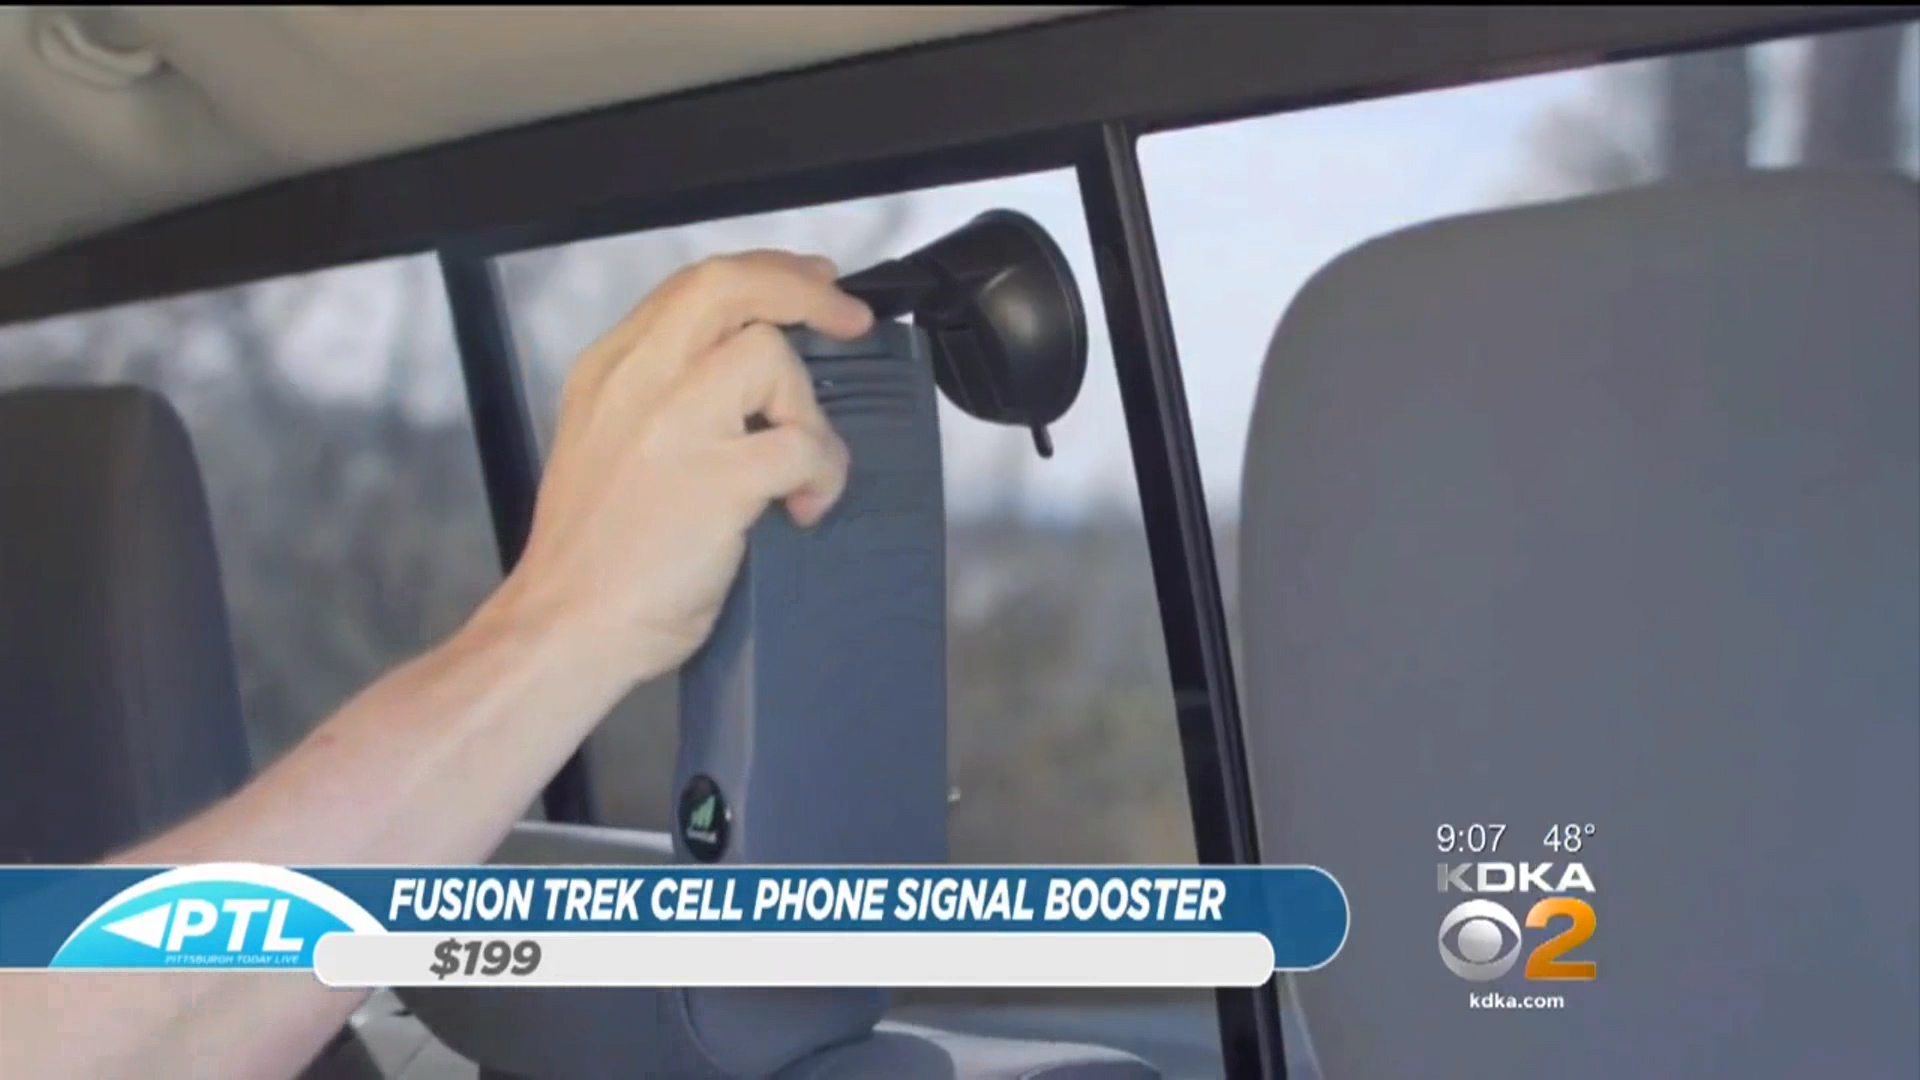 """""""FUSION TREK""""CELL PHONE SIGNAL BOOSTER BY SURECALL - Suggested retail: $199Shop Now"""